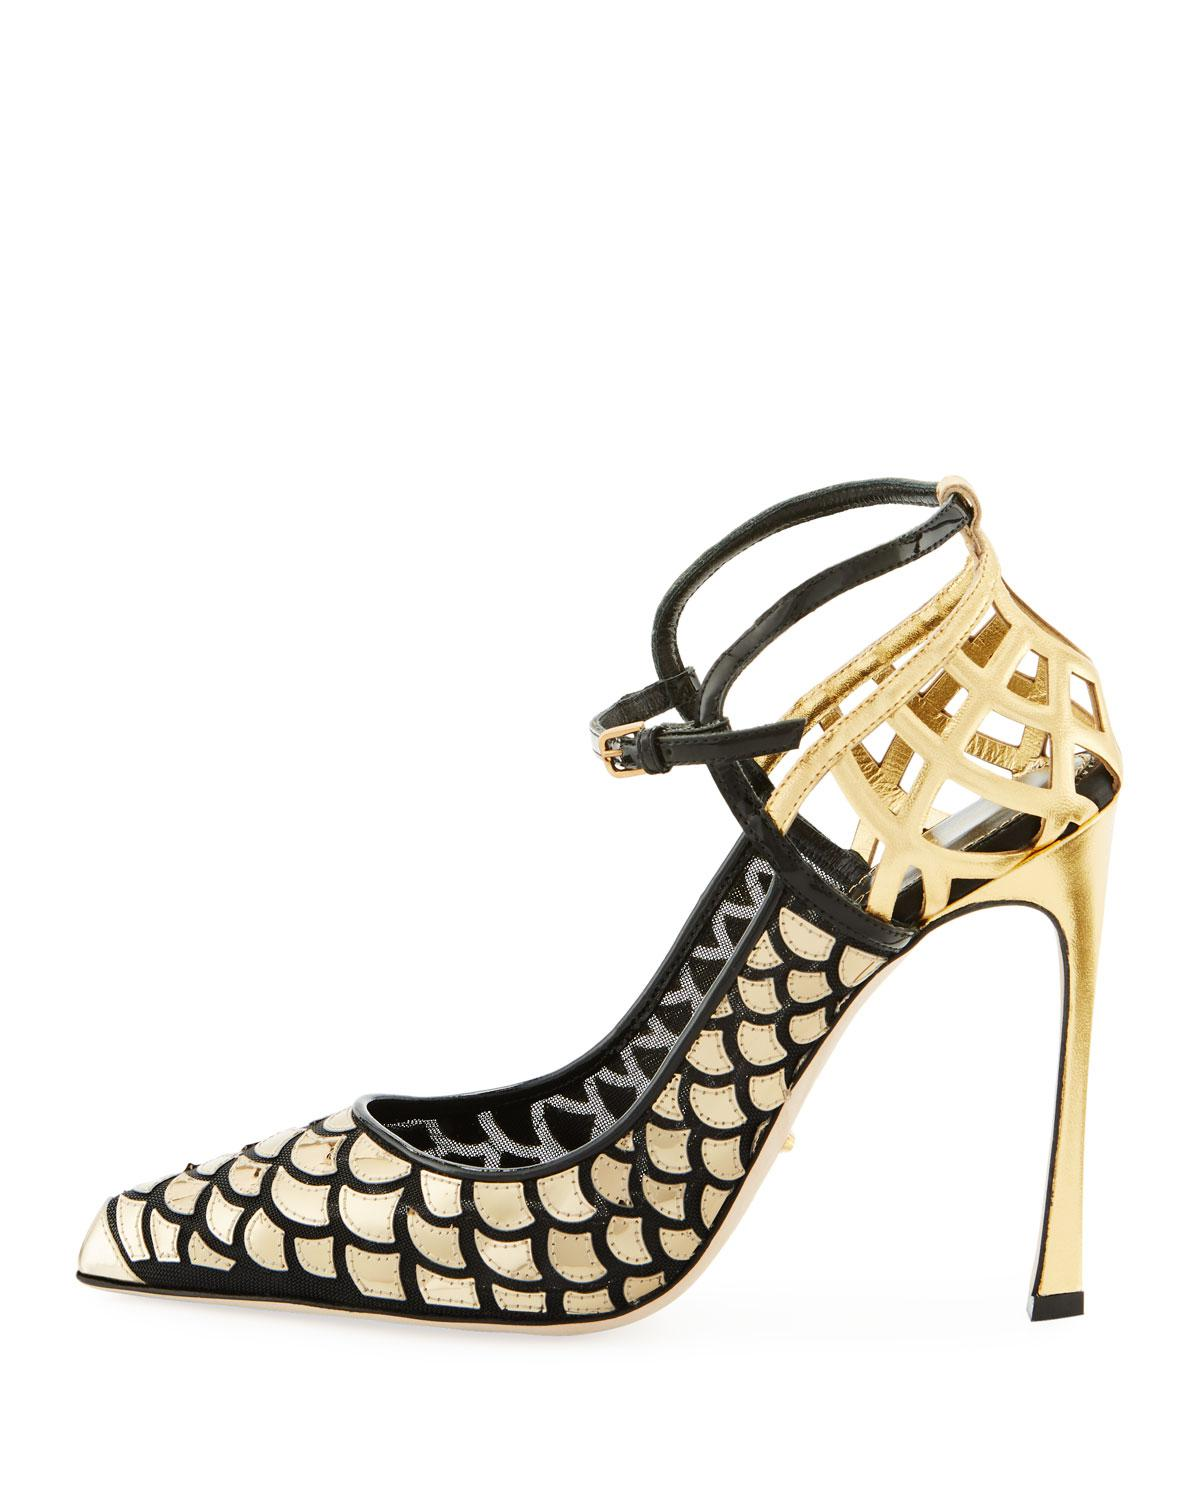 Sergio Rossi Cutout Slingback Pumps 2014 new online perfect for sale buy cheap finishline gQpLUIUfU